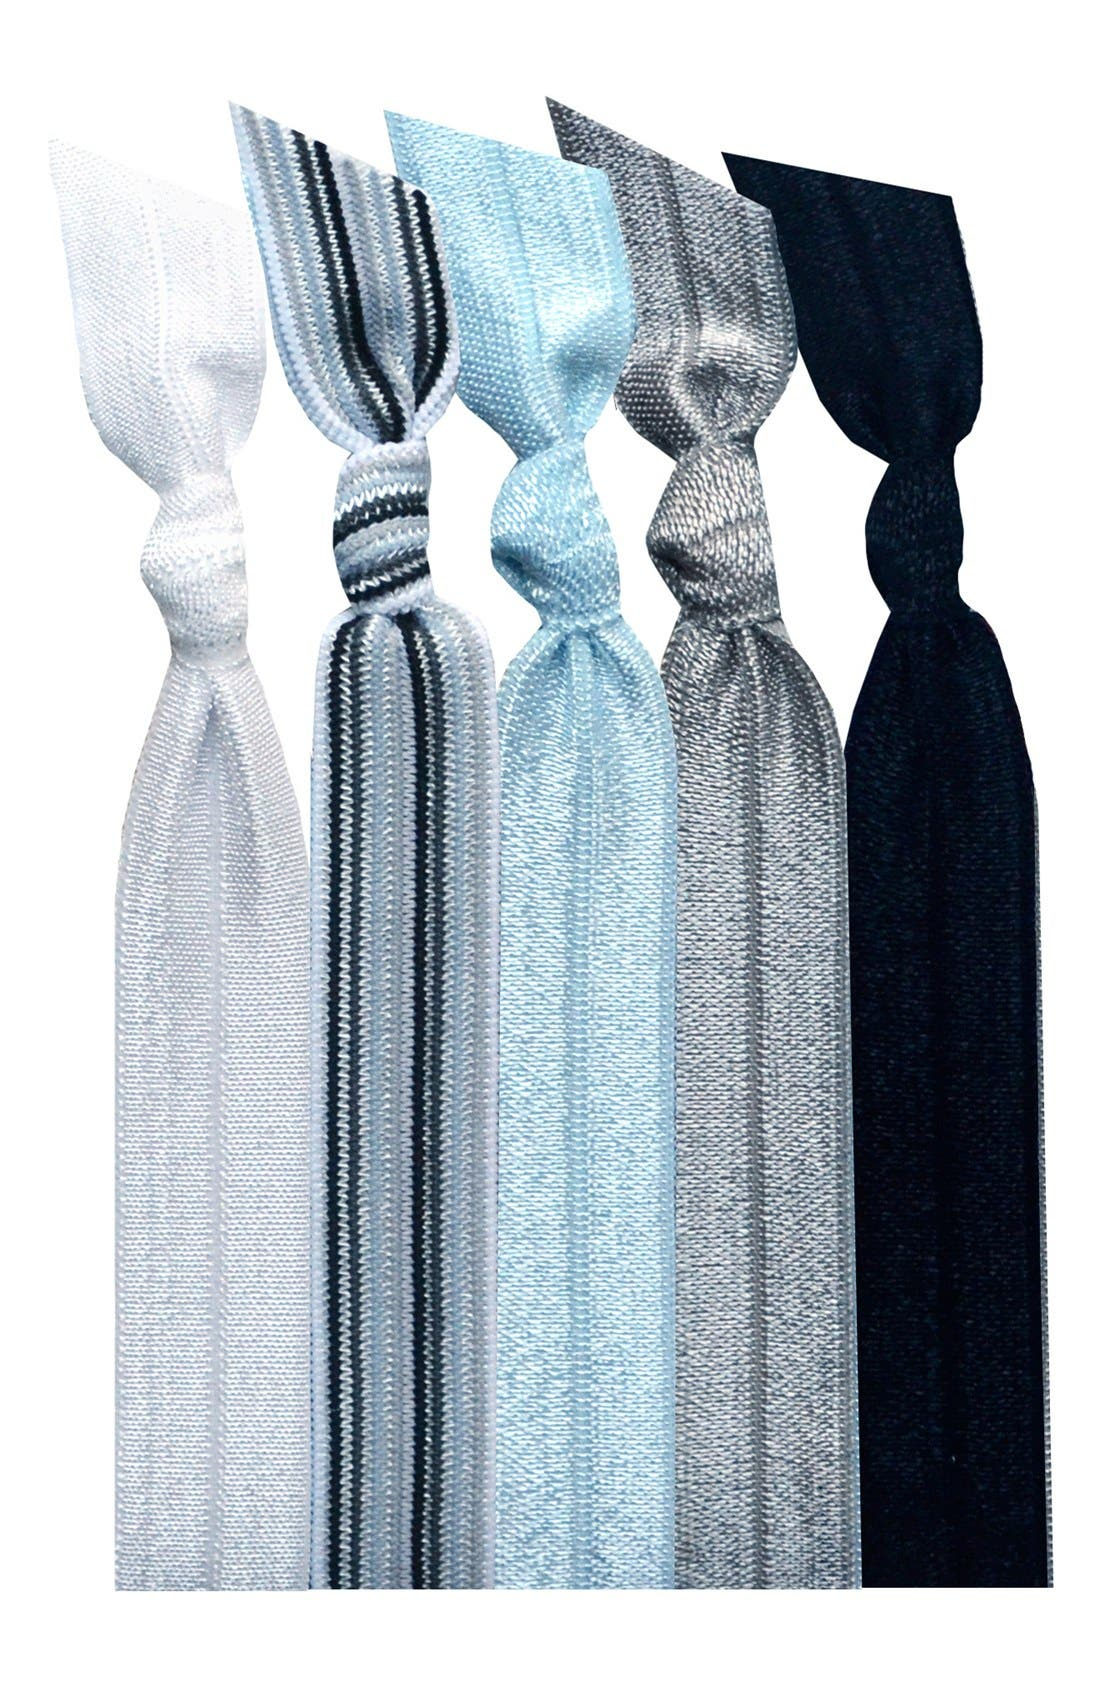 Alternate Image 1 Selected - Emi-Jay 'Grey Stripe' Hair Ties (5-Pack) ($10.80 Value)